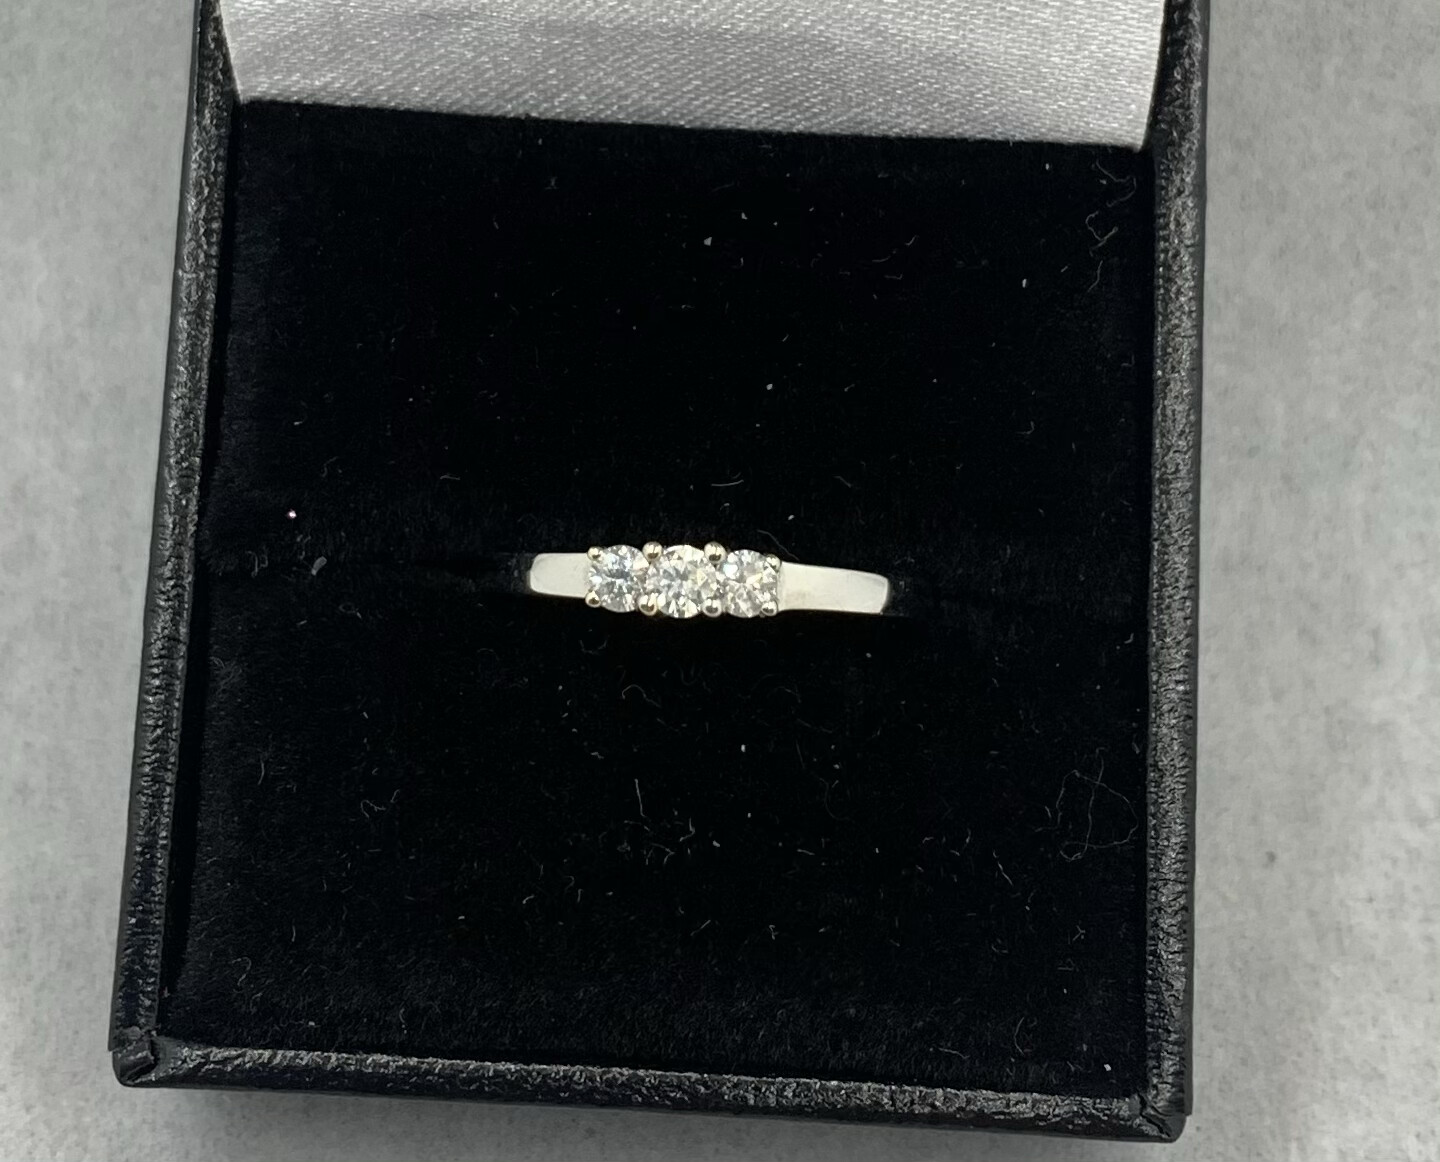 Past Present Future 25 Pt Total Weight Diamond Band set in White Gold